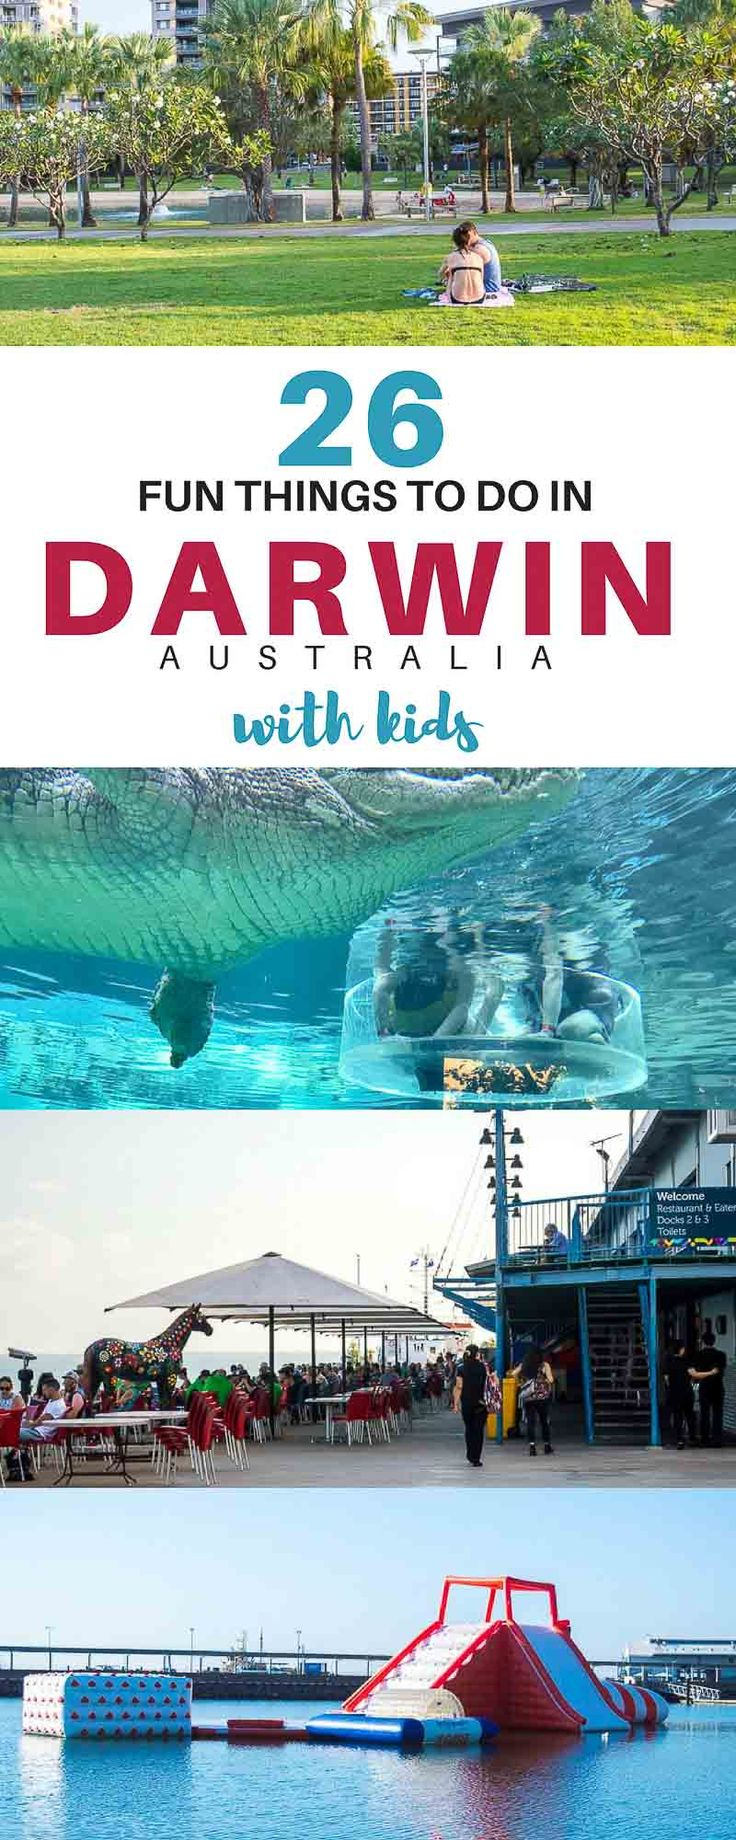 Best Things to do in Darwin Australia | Where to stay in Darwin | Getting around Darwin | Darwin with Kids | Darwin Travel | Darwin Northern Territory